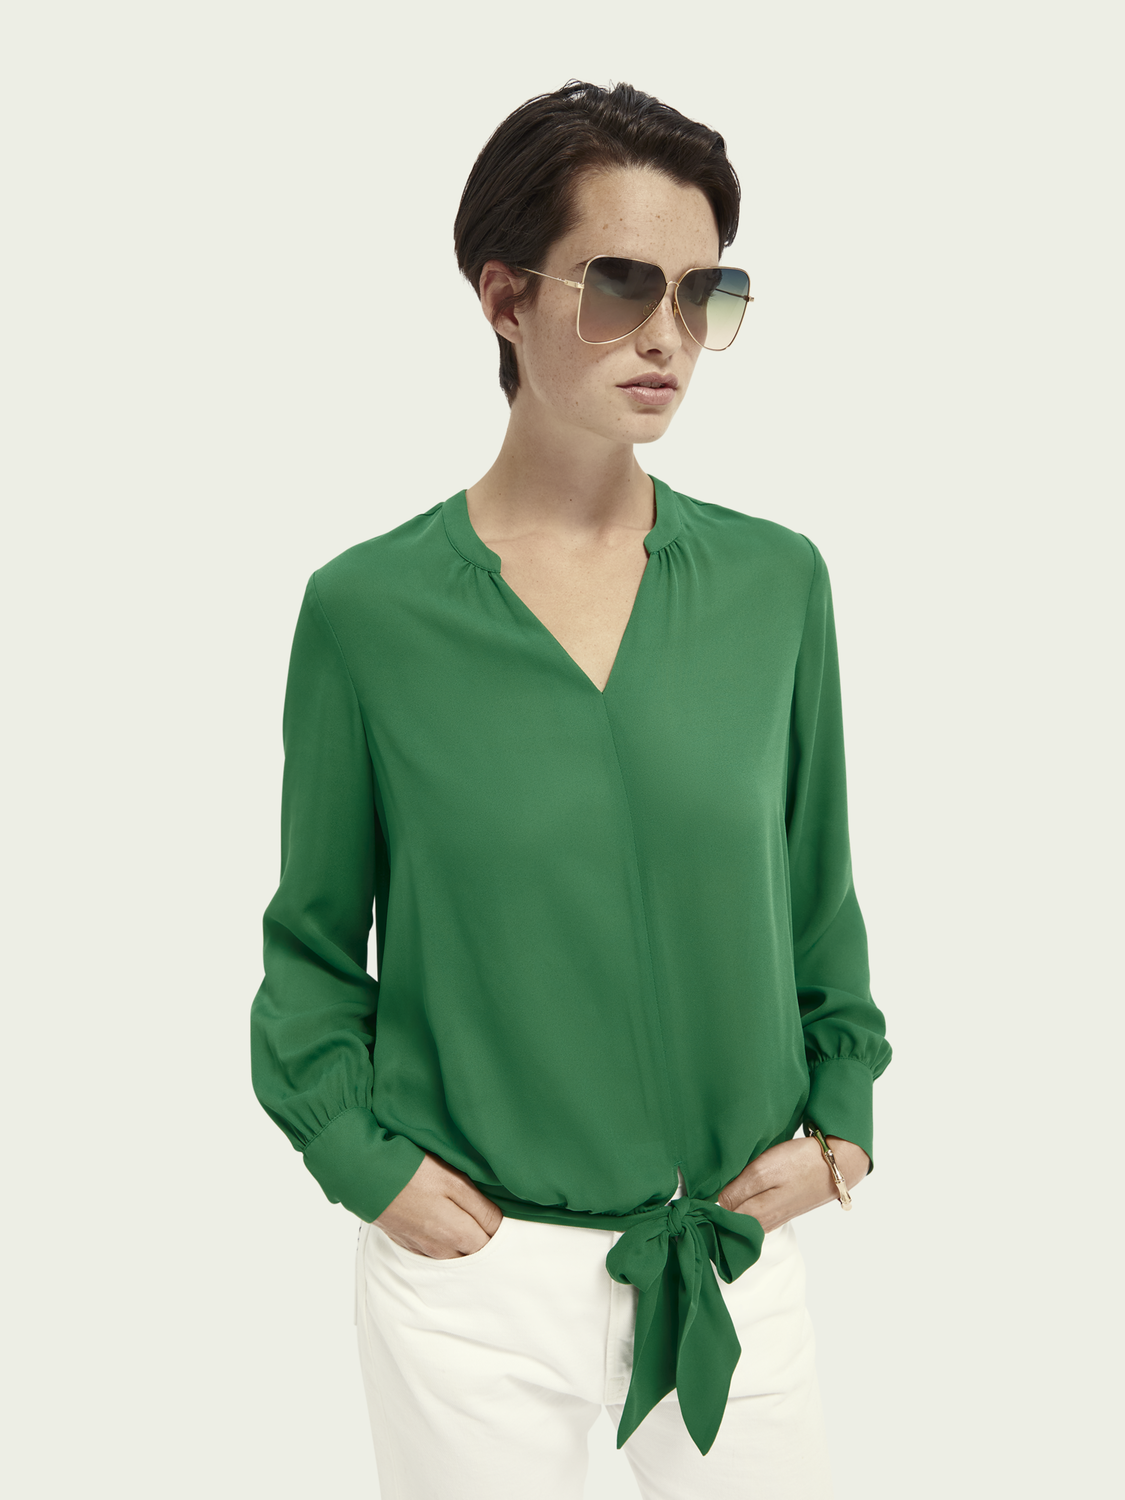 Women V-neck top with tie detail